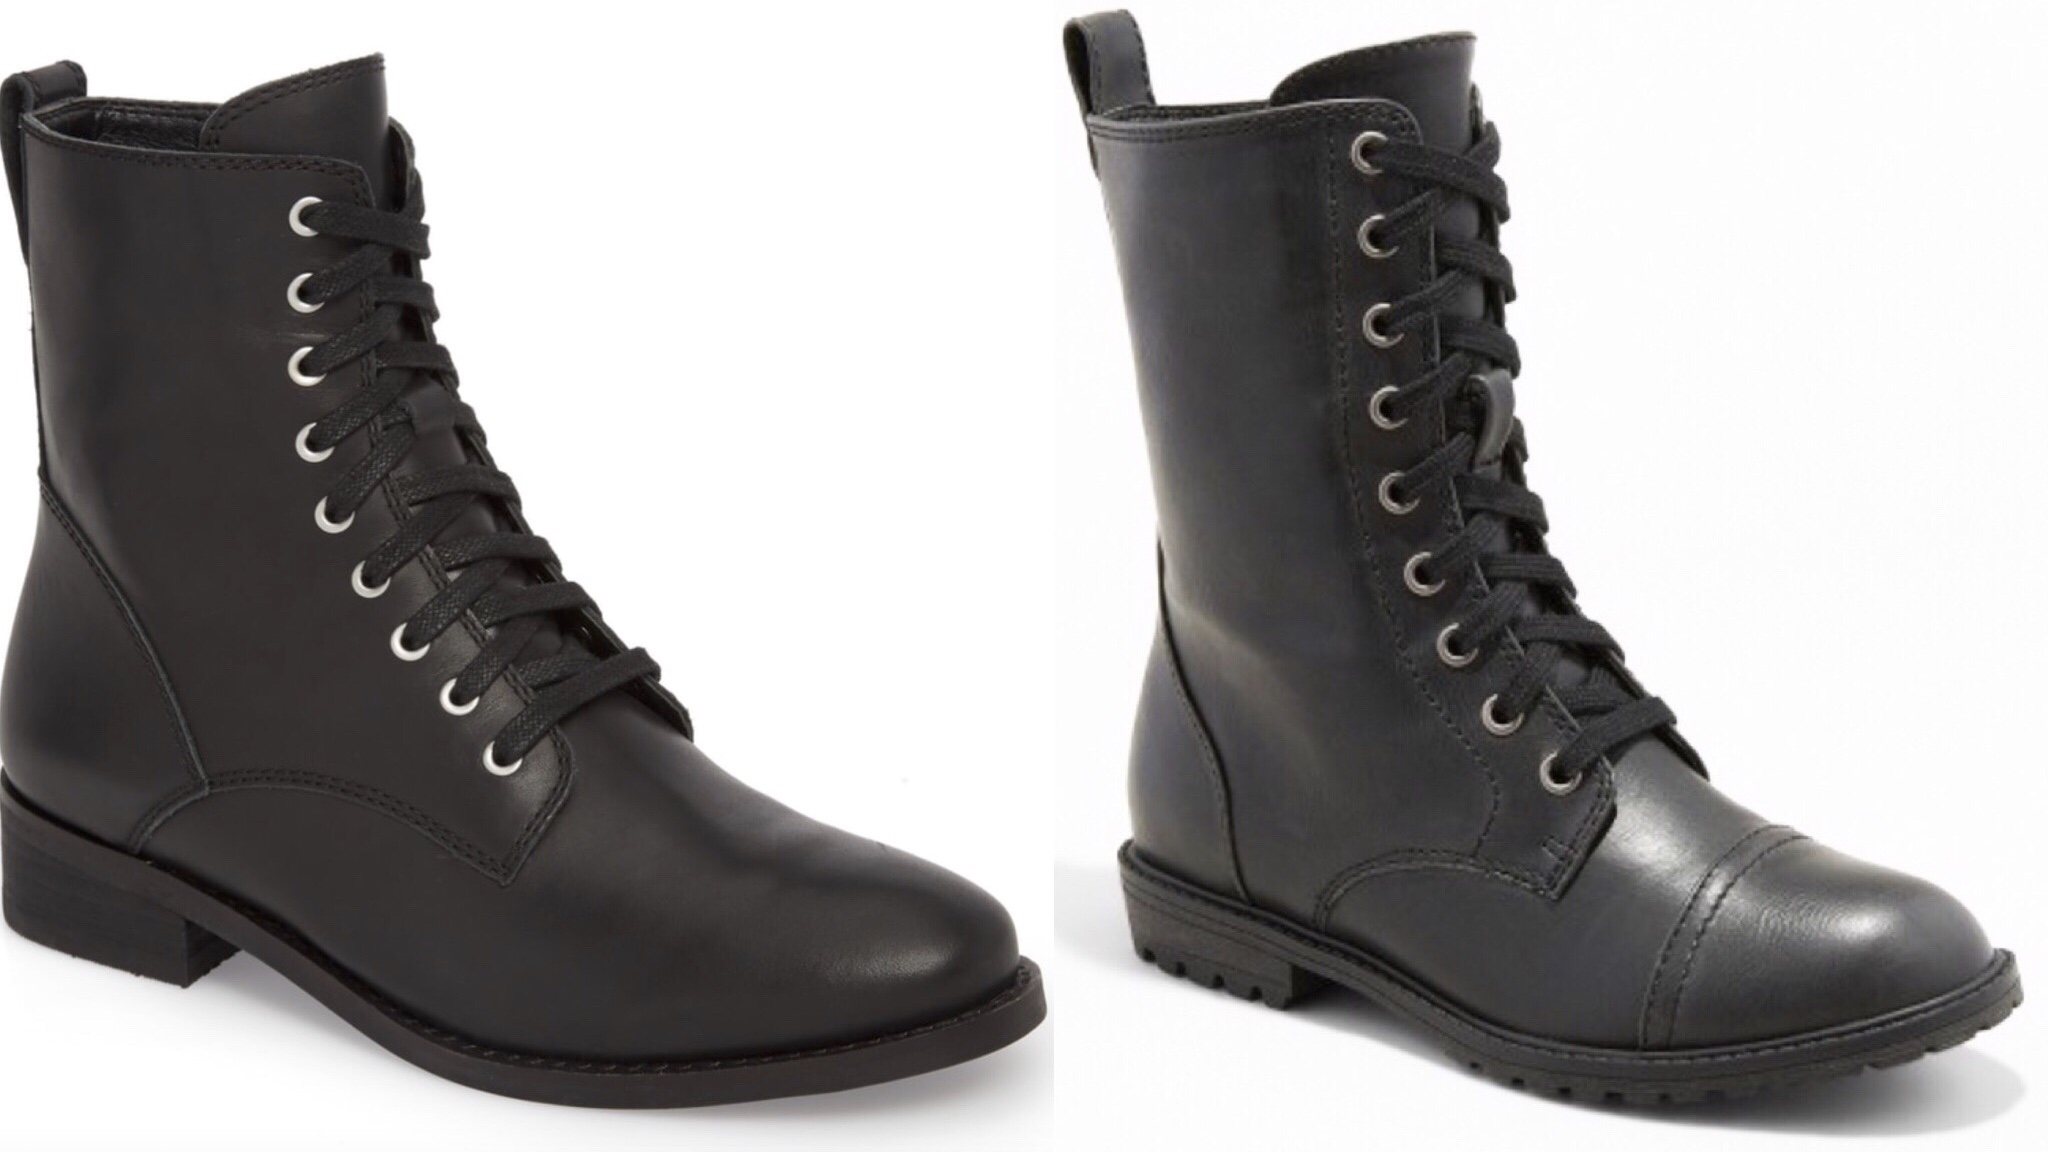 Save on Style Fall shoes designer looks